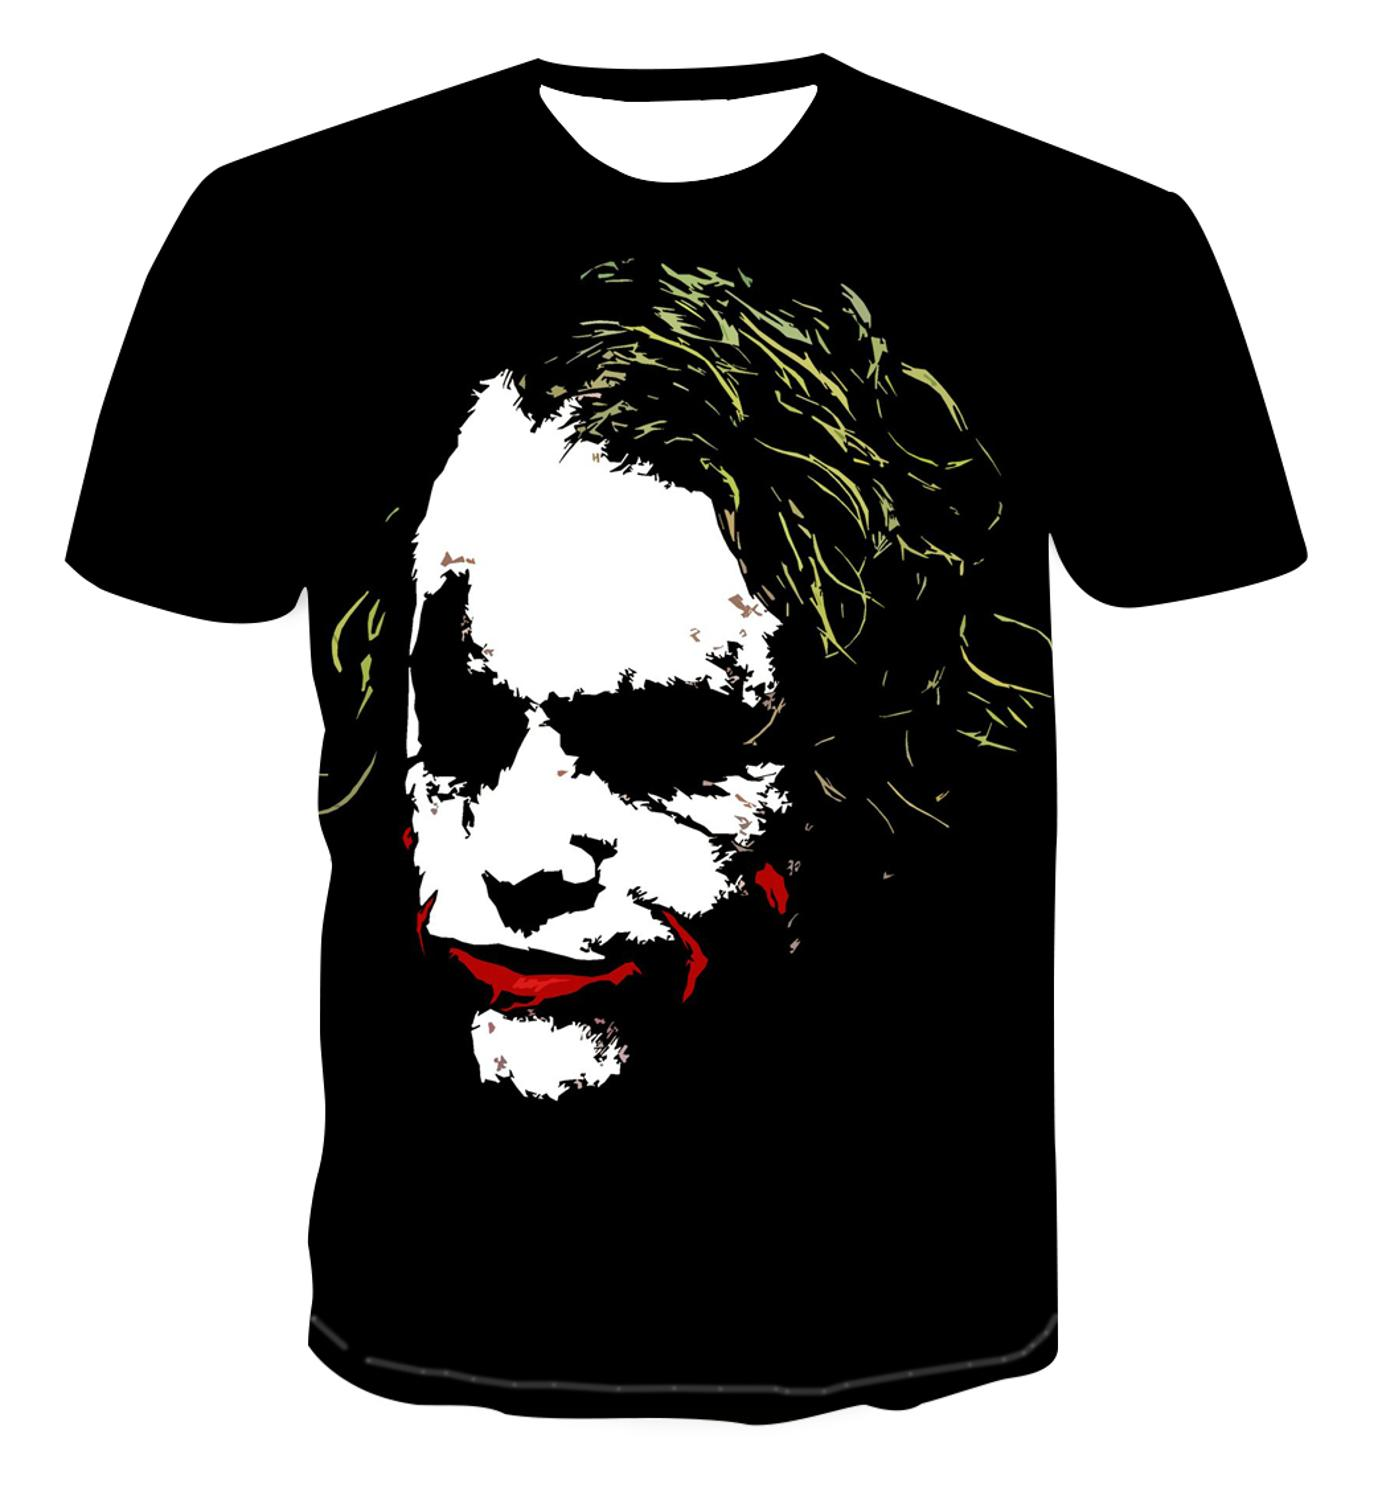 Hot Selling Clown 3D Printing T-shirt Men's Clown Figure Leisure Men's Fashion Trend Short Sleeve Handsome Top S-6xl